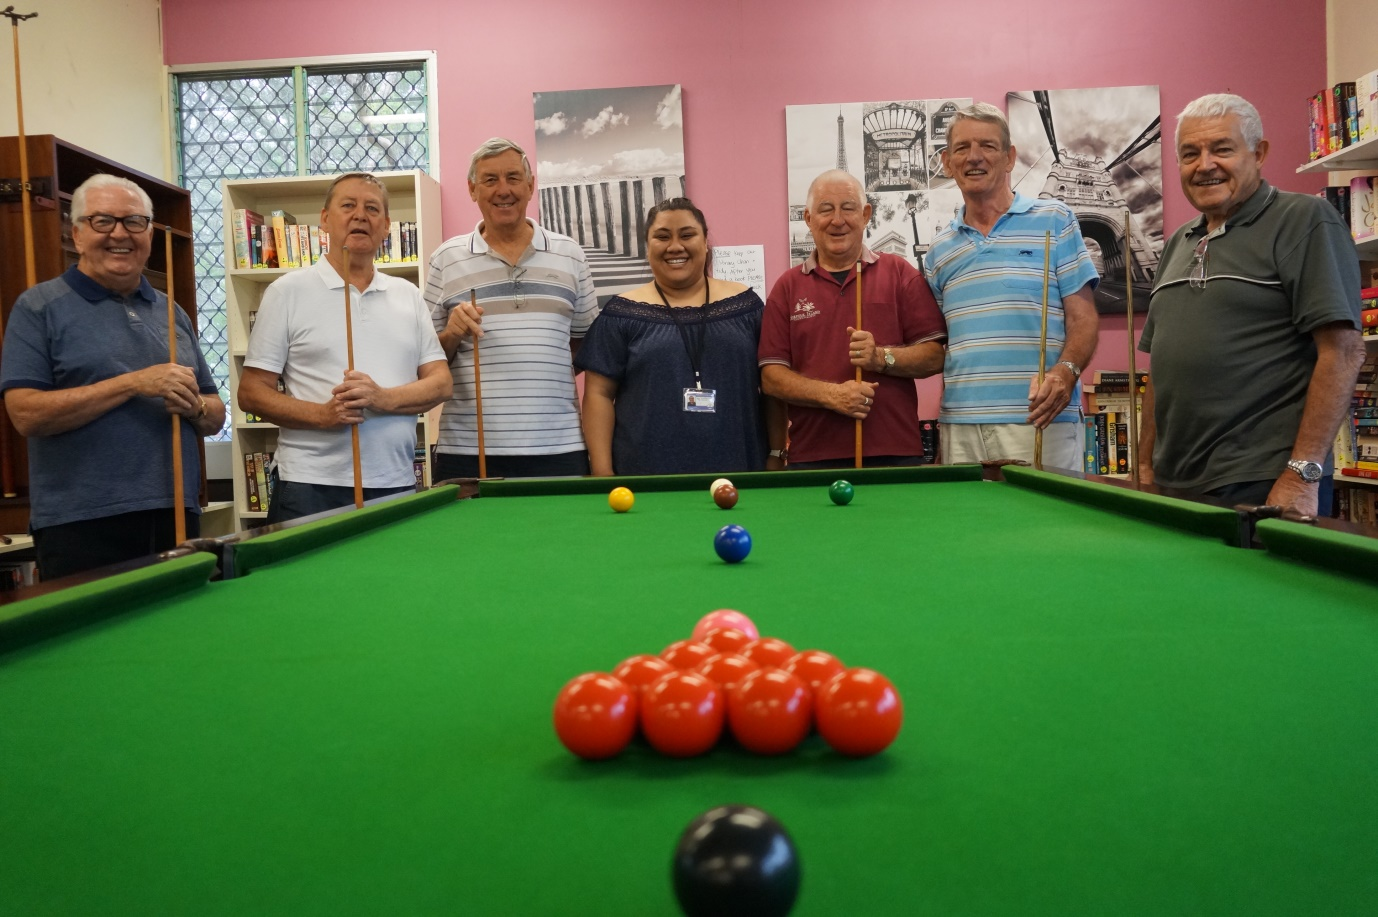 50 & Better Healthy Ageing: Men's Pool Table Group